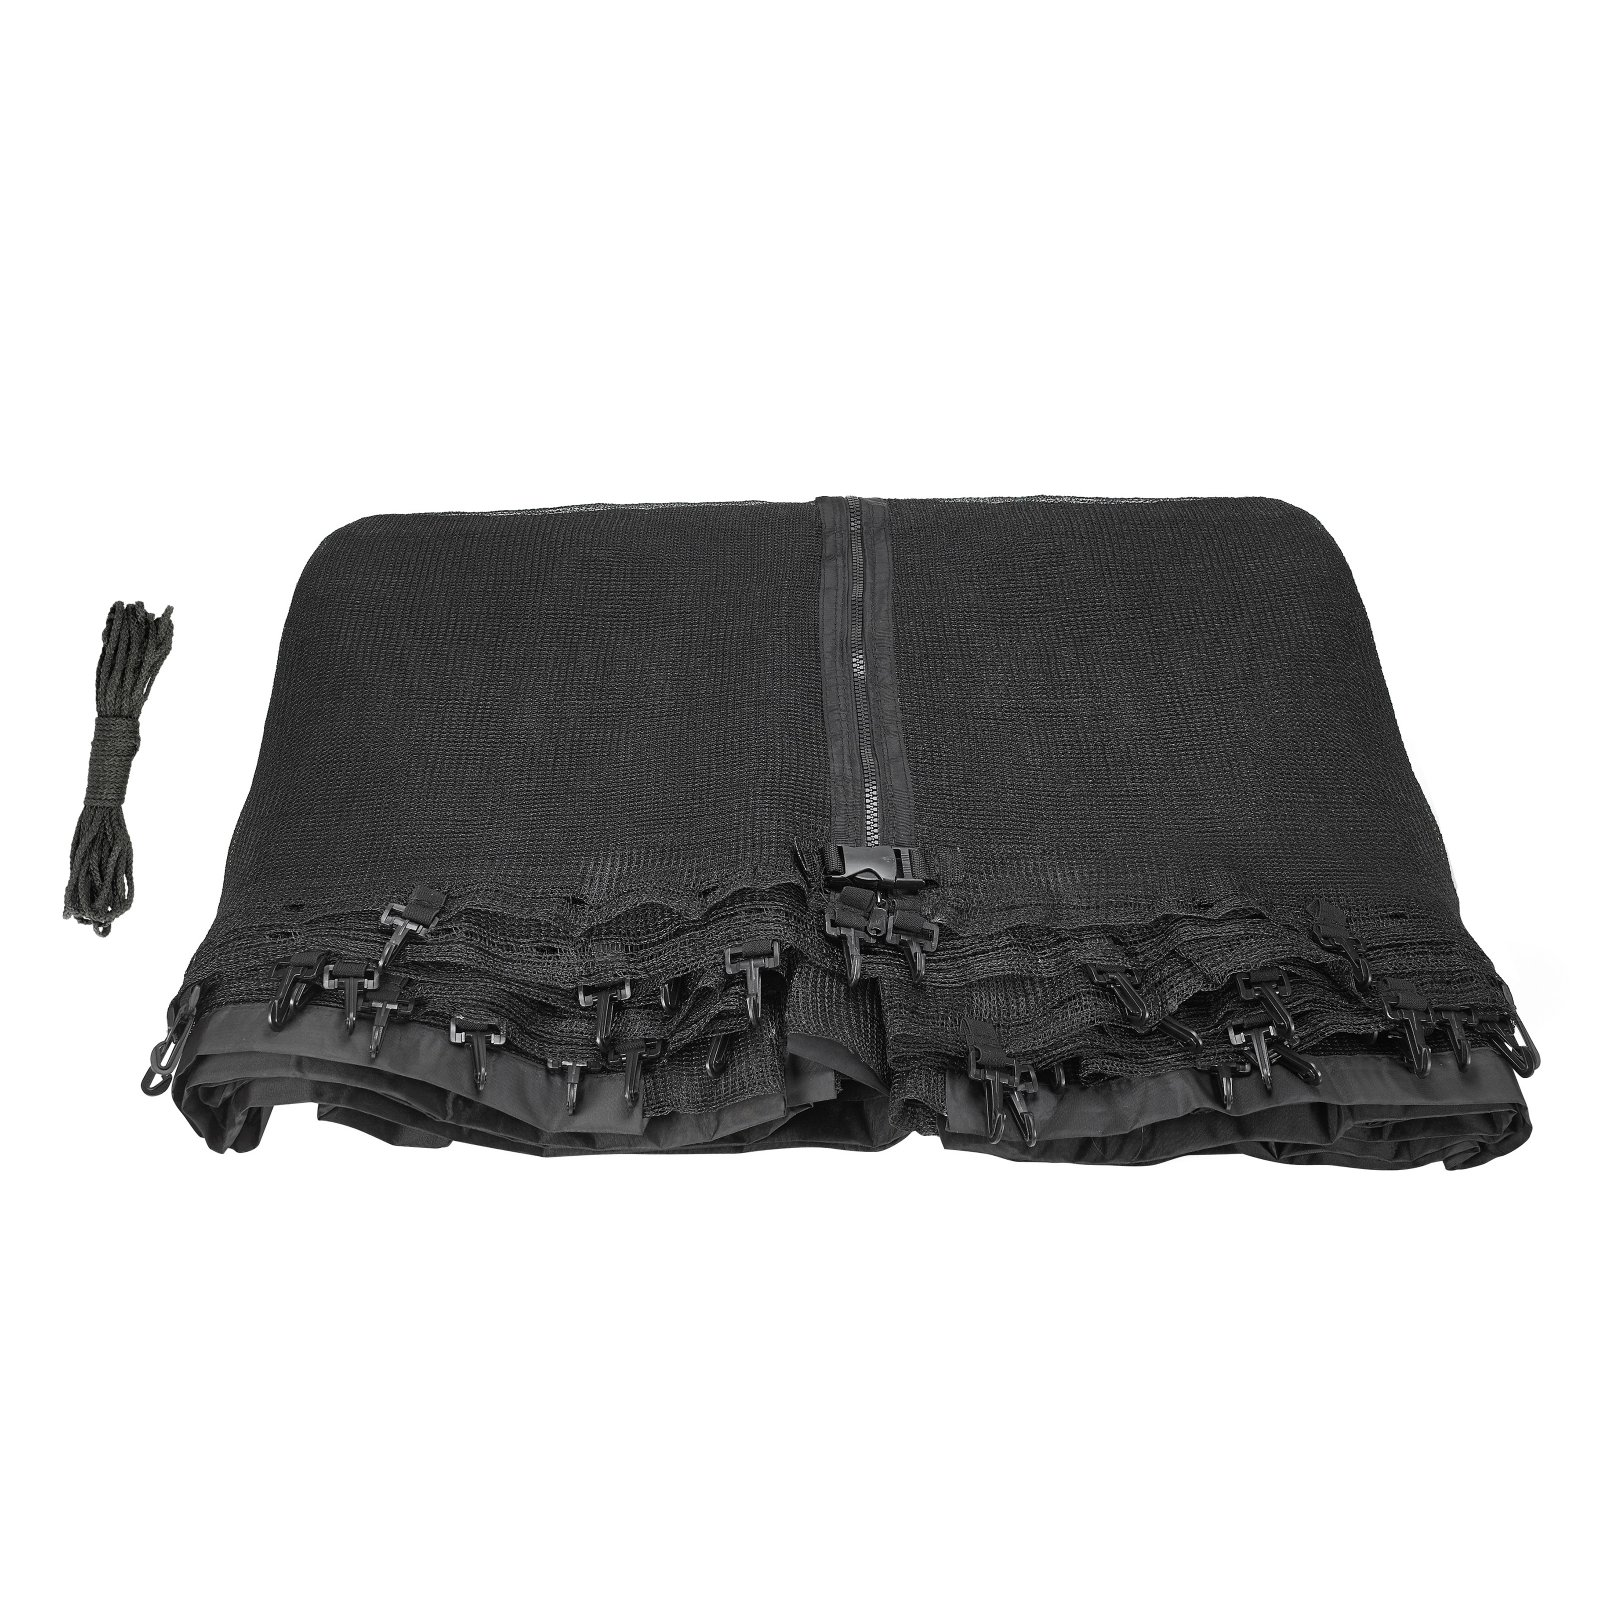 Upper Bounce Replacement Trampoline Safety Net